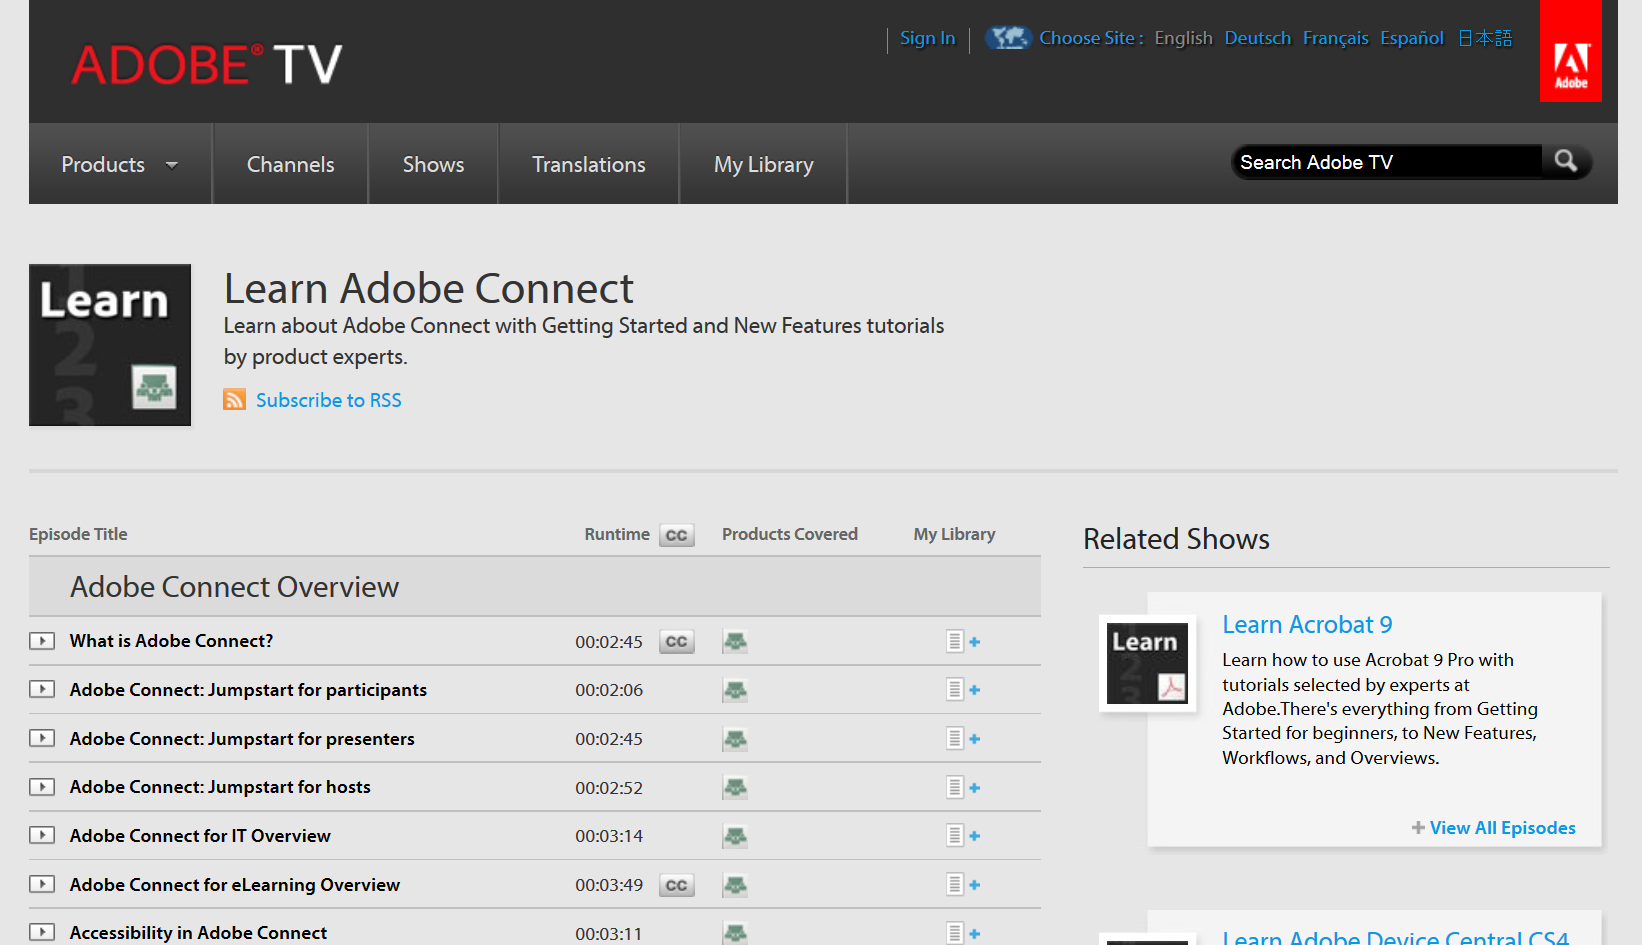 Learn Adobe Connect http://tv.